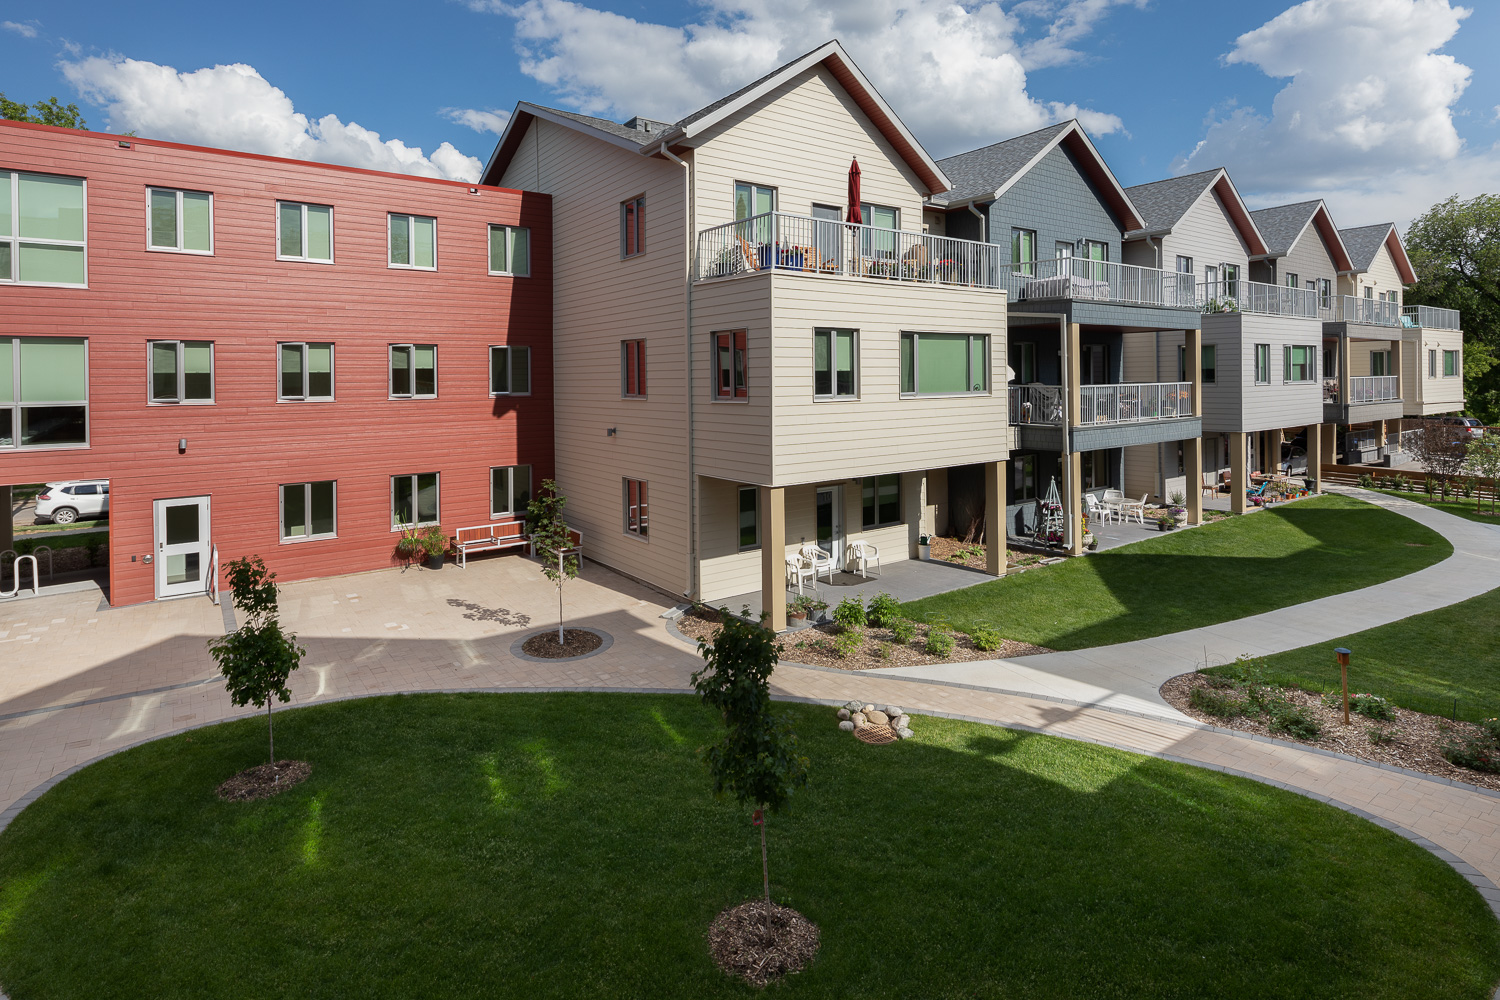 Old-Grace-Housing-Coop-courtyard-iverview.jpg